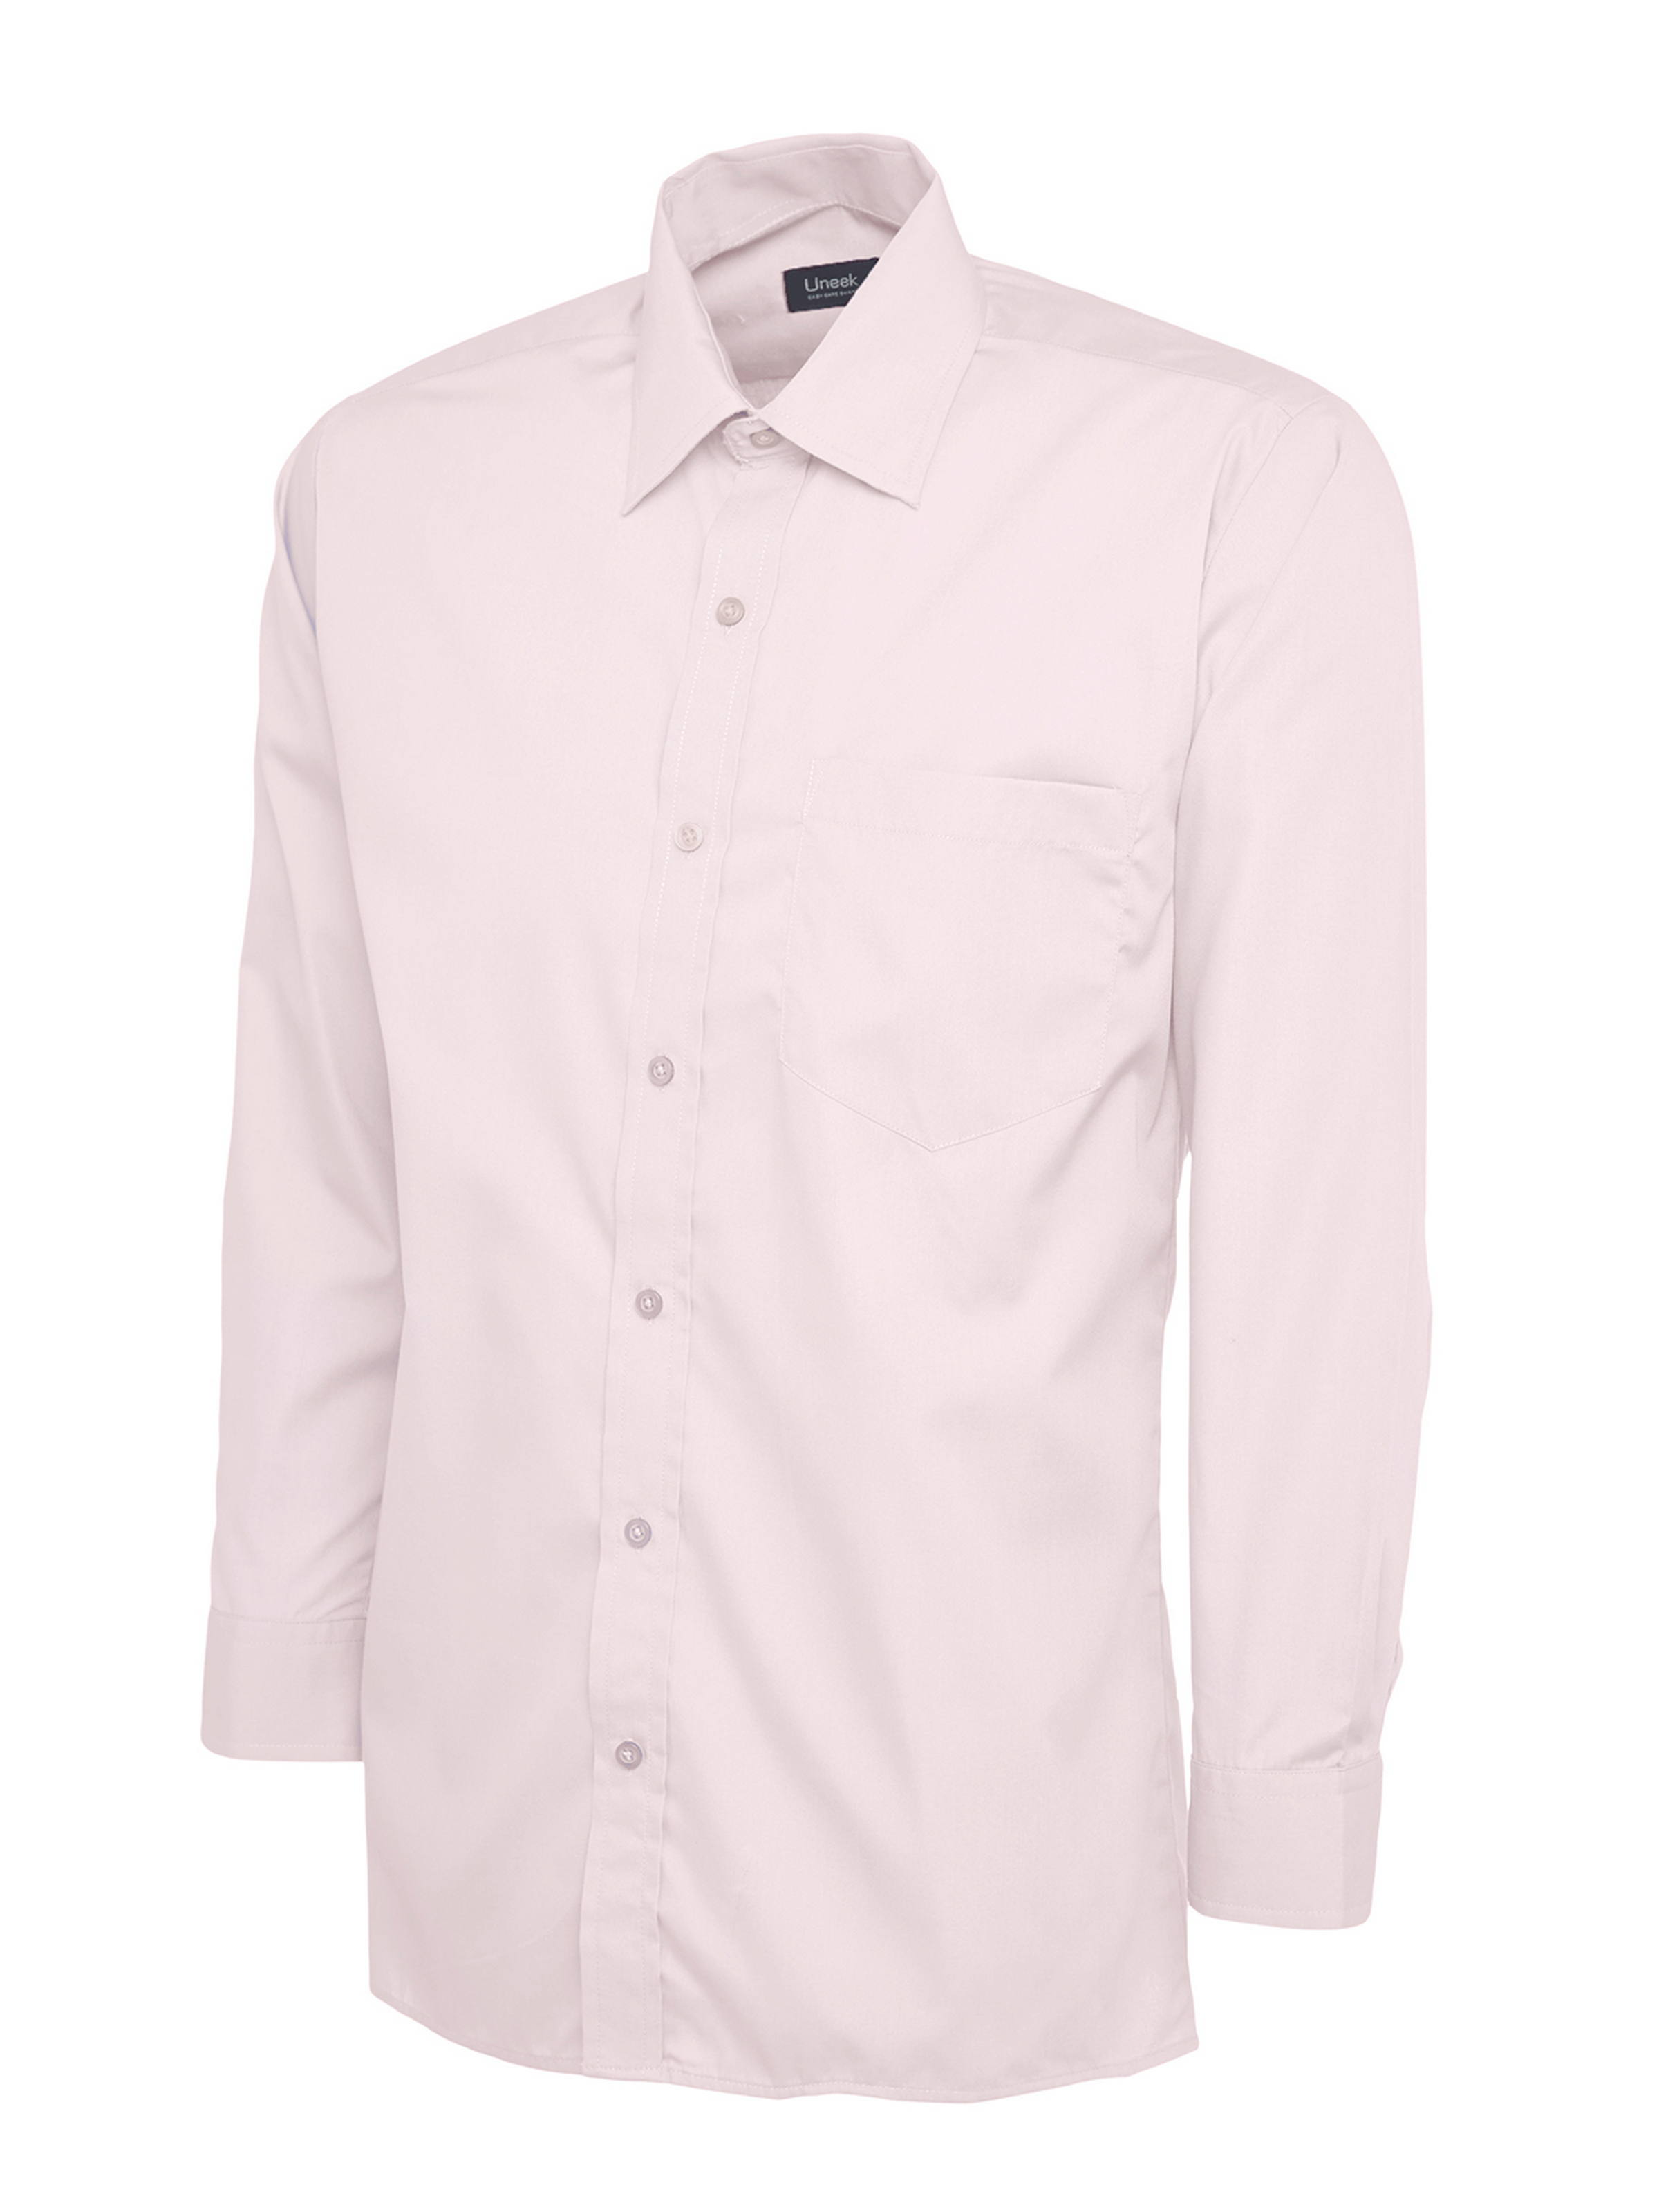 709 Mens Poplin Full Sleeve Shirt